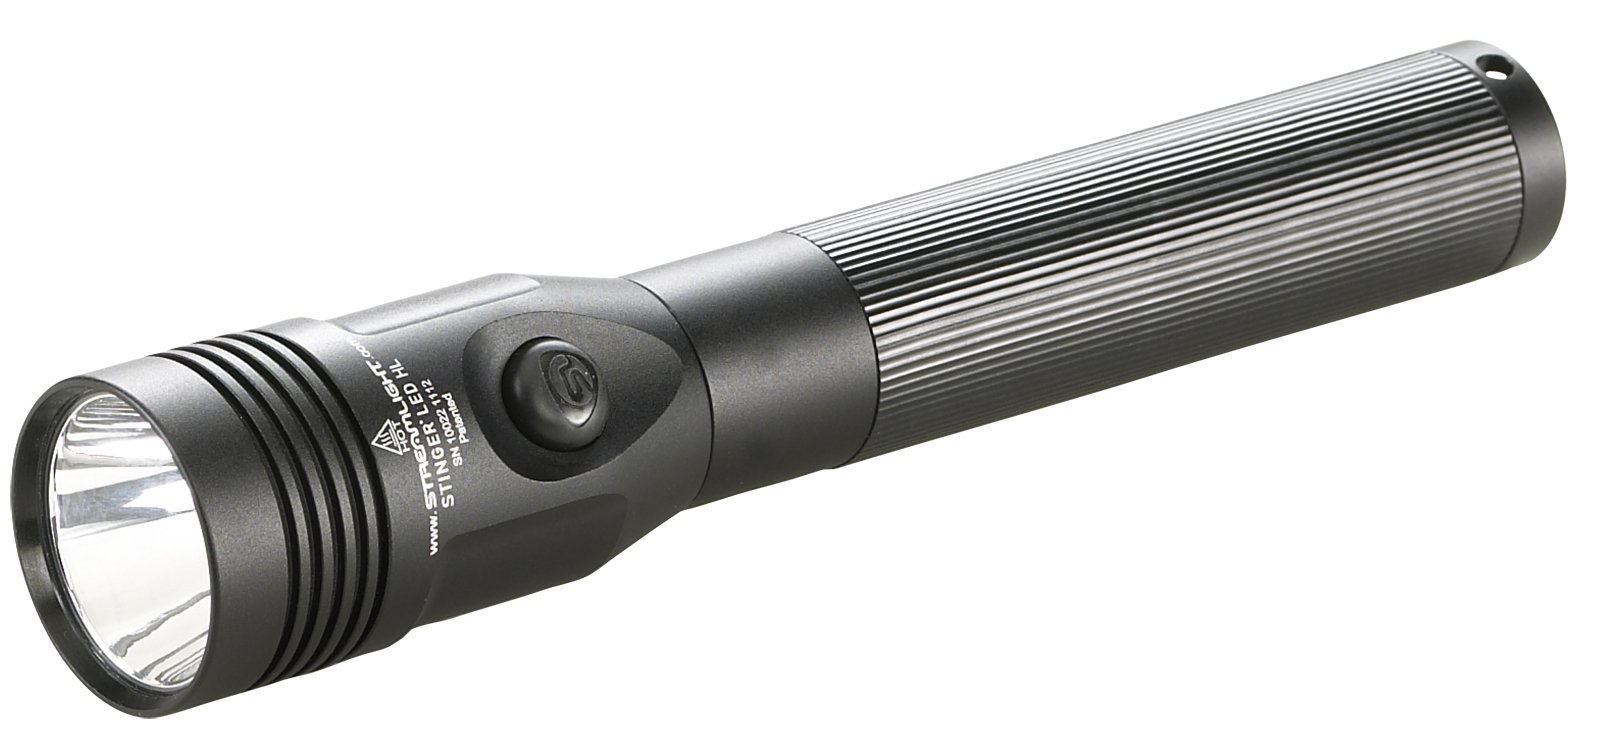 Streamlight 75429 Stinger LED High Lumen Rechargeable Flashlight without Charger